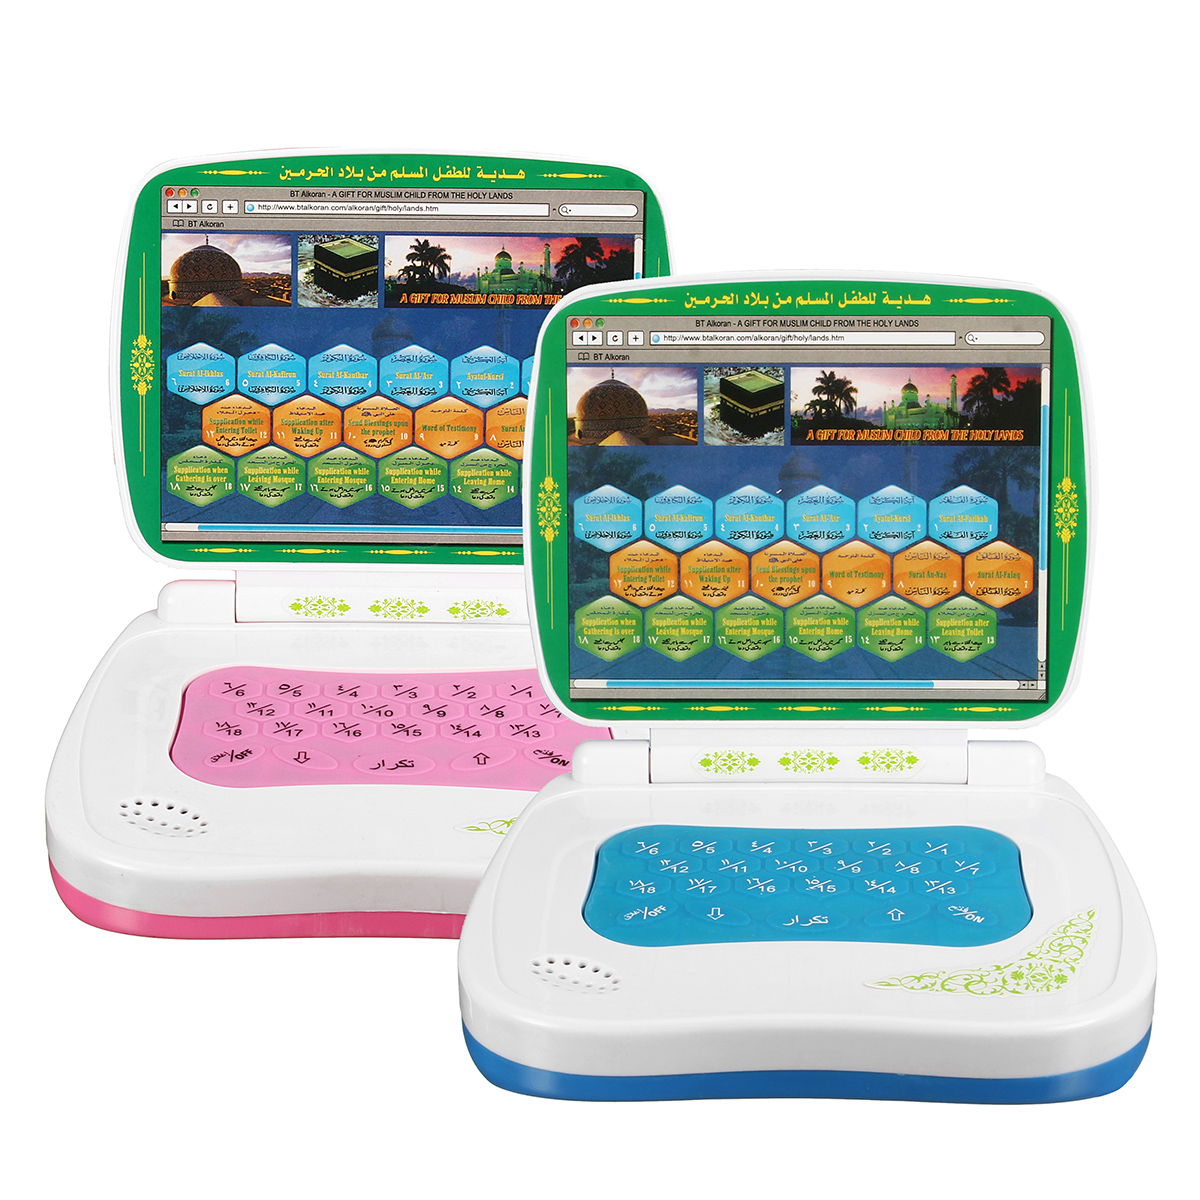 Islamic Learning Toy Tablet Education Quran Duas Laptop Machine Children Kids